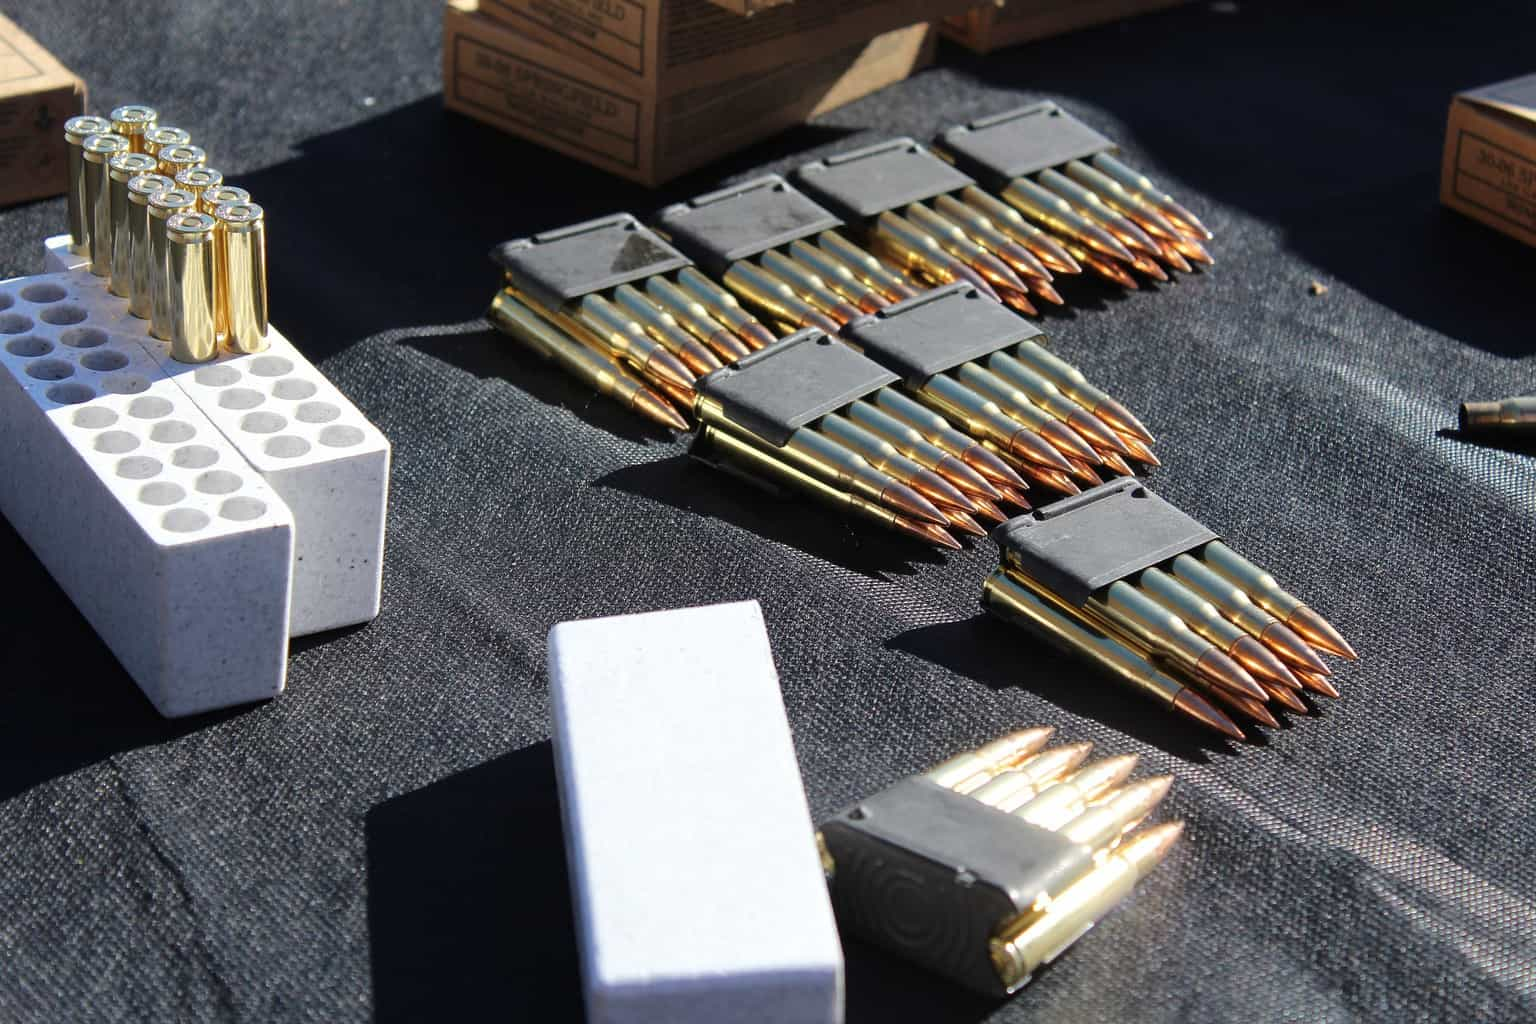 Stacks of new bullets placed in a table